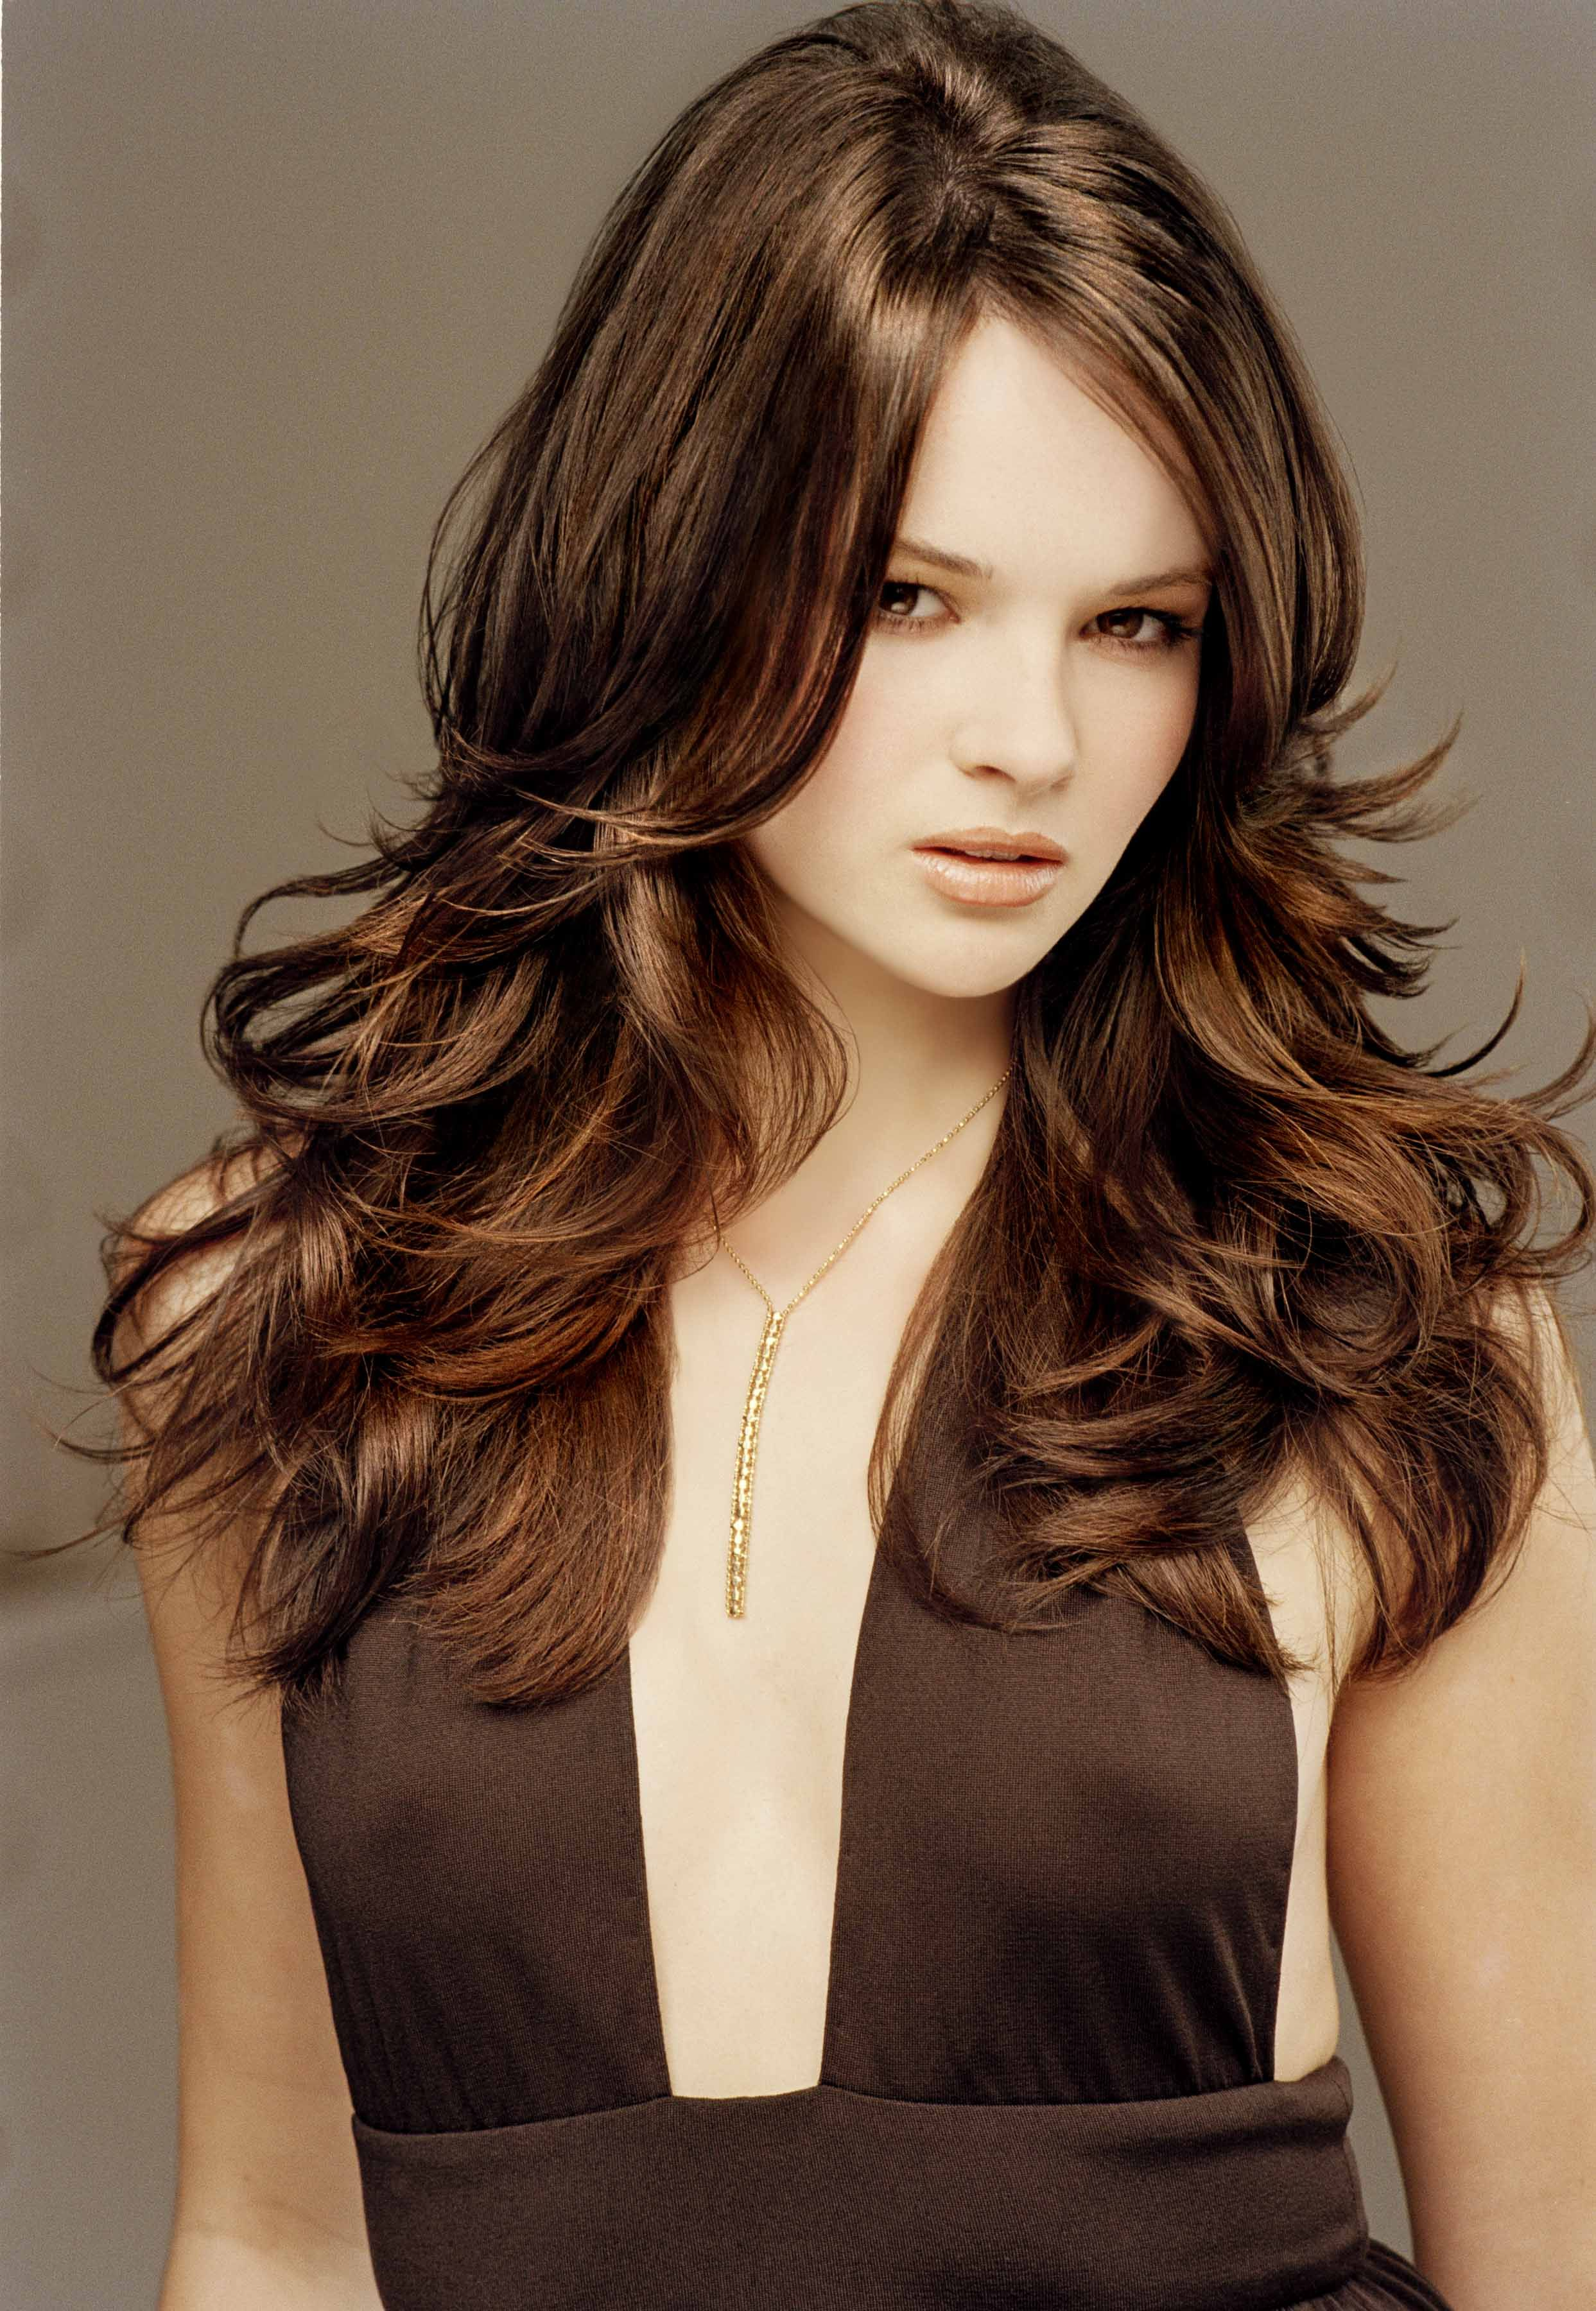 flicked out ends | cosas para ponerme | pinterest | hair style